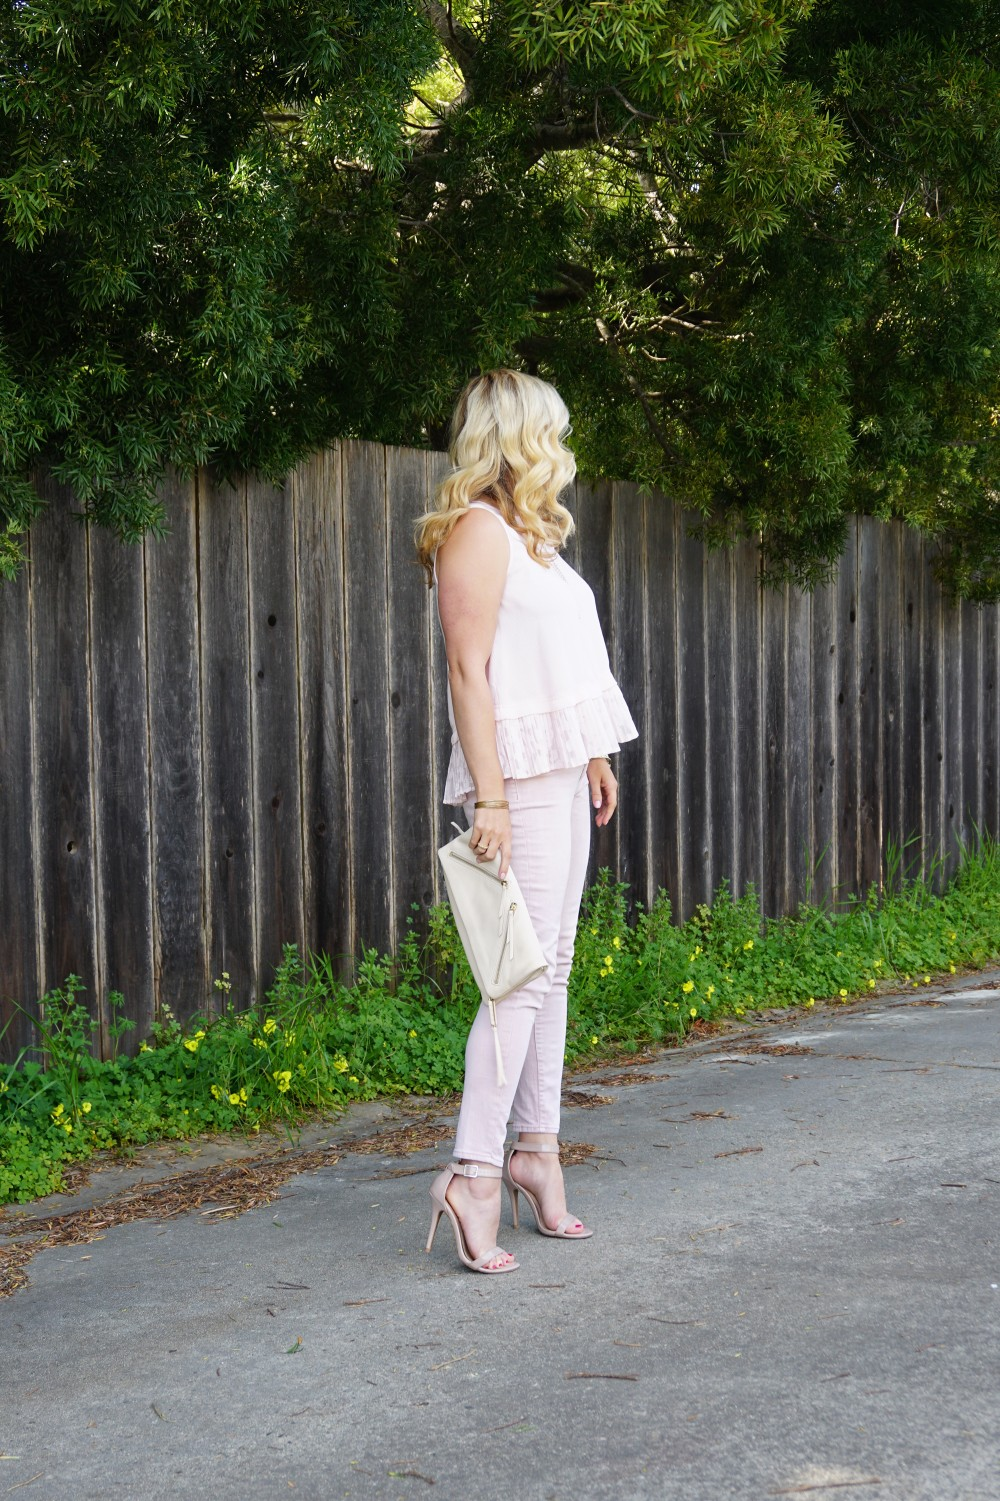 Blush Pink Easter Outfit-Easter Outfit Idea-Target Style-Who What Wear for Target-Outfit Inspiration-Have Need Want 11